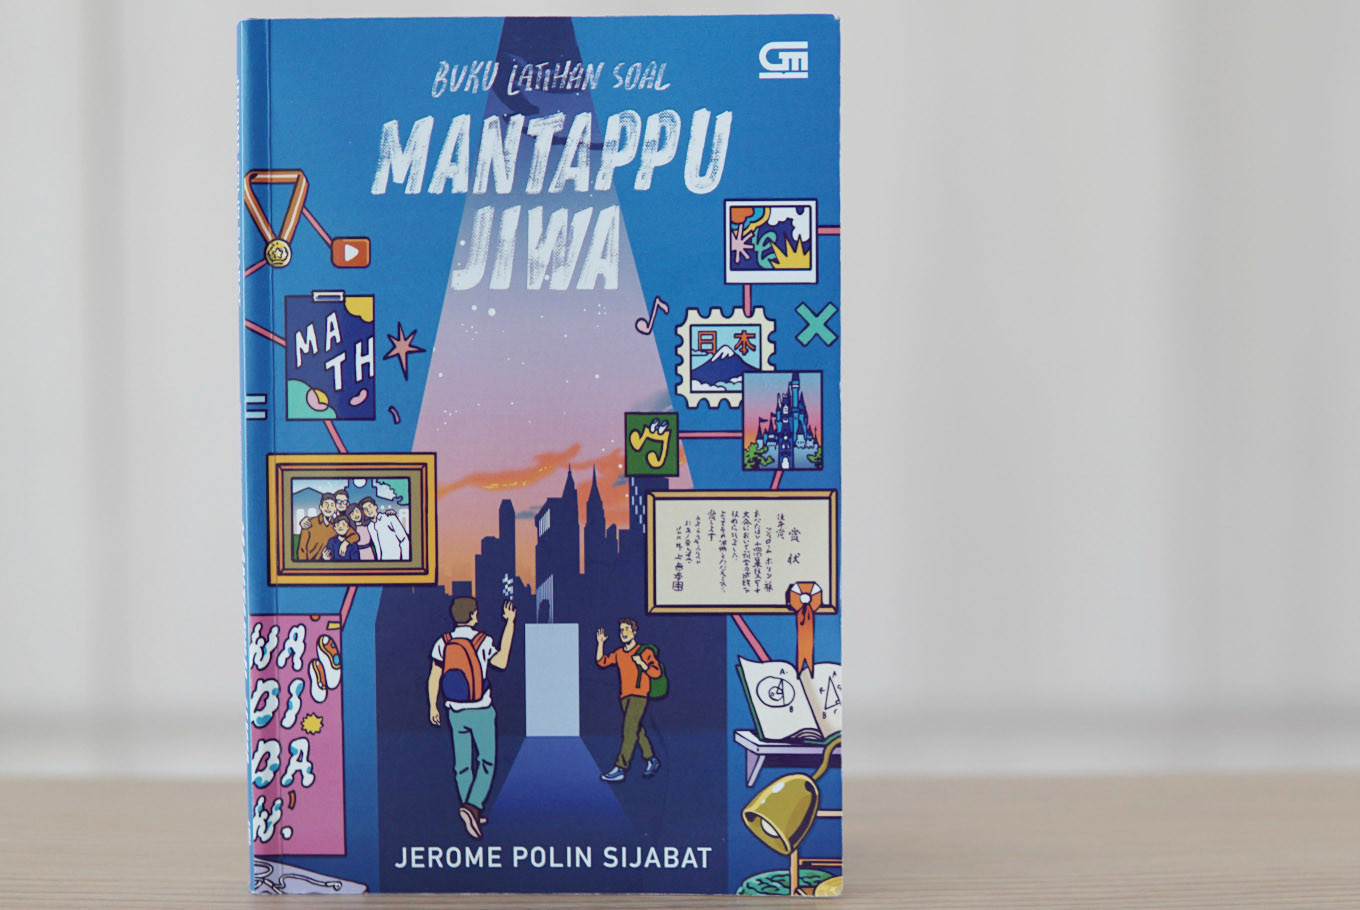 Jerome Polin tells all in 'Mantappu Jiwa'